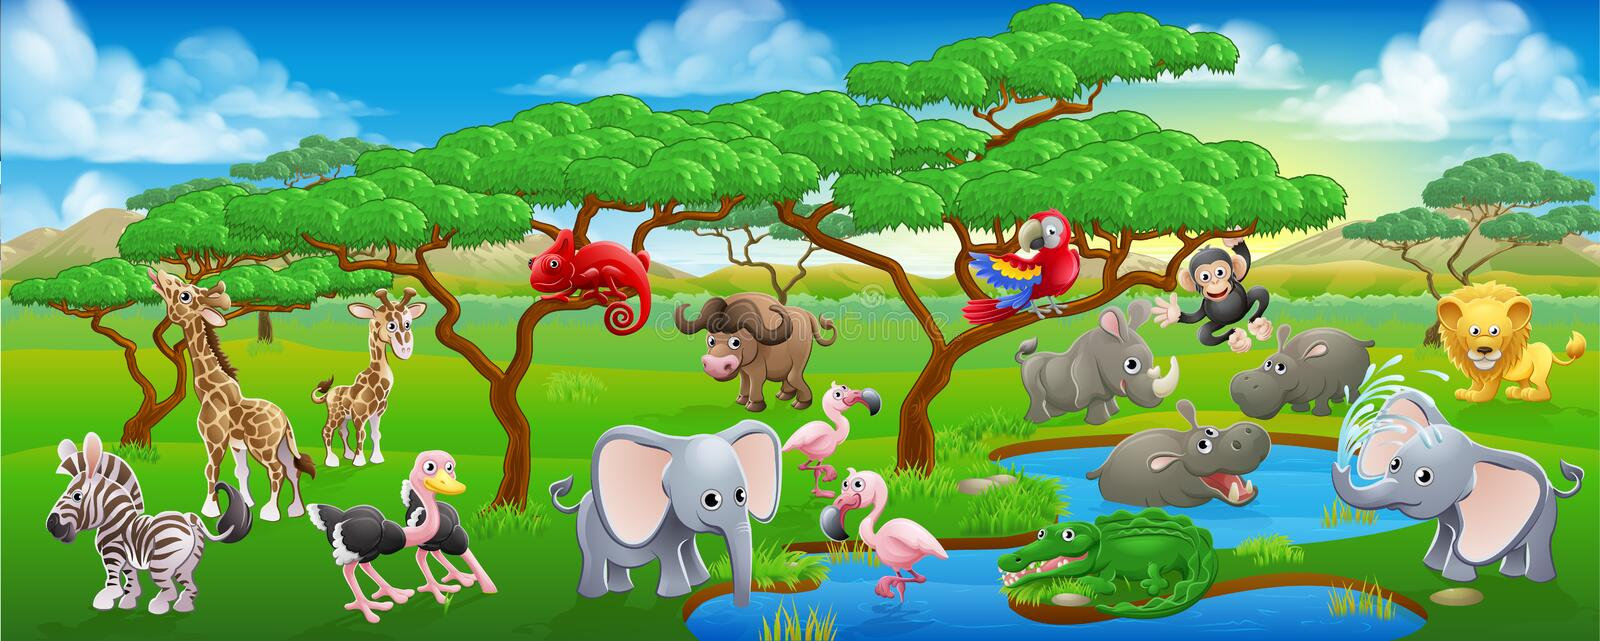 Leuk Beeldverhaal Safari Animal Scene Landscape stock illustratie